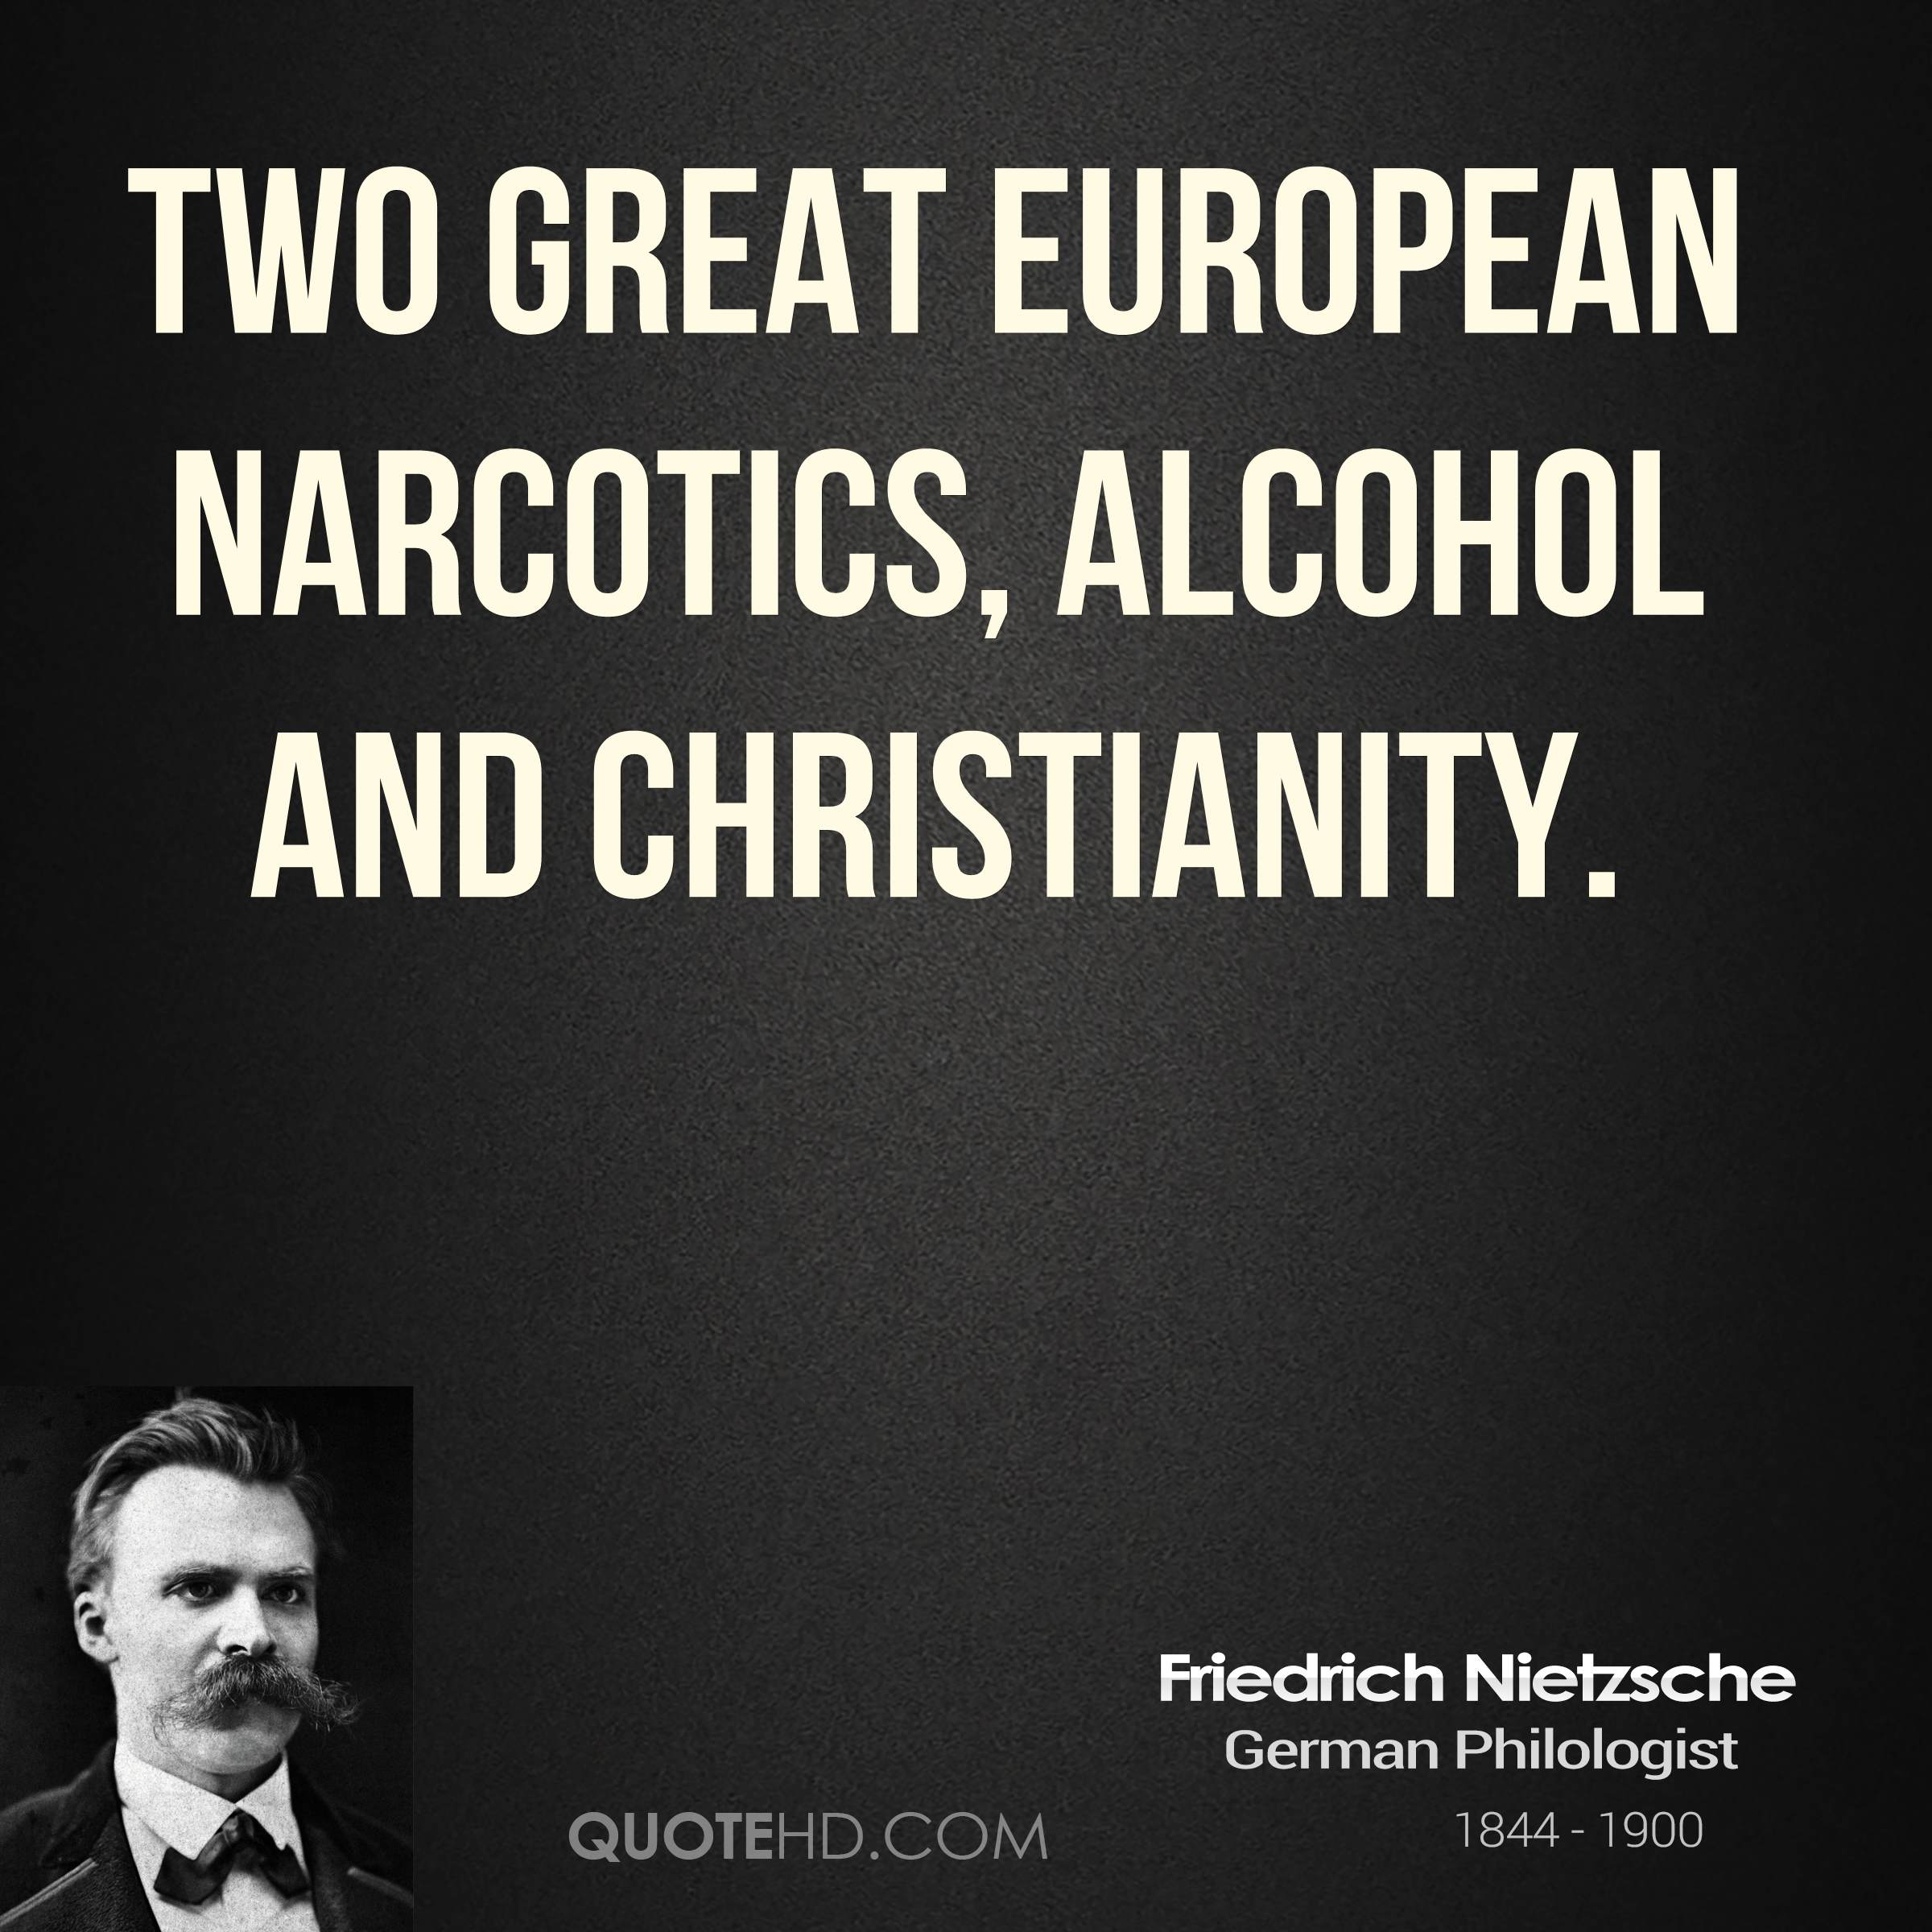 friedrich-nietzsche-philosopher-two-great-european-narcotics-alcohol